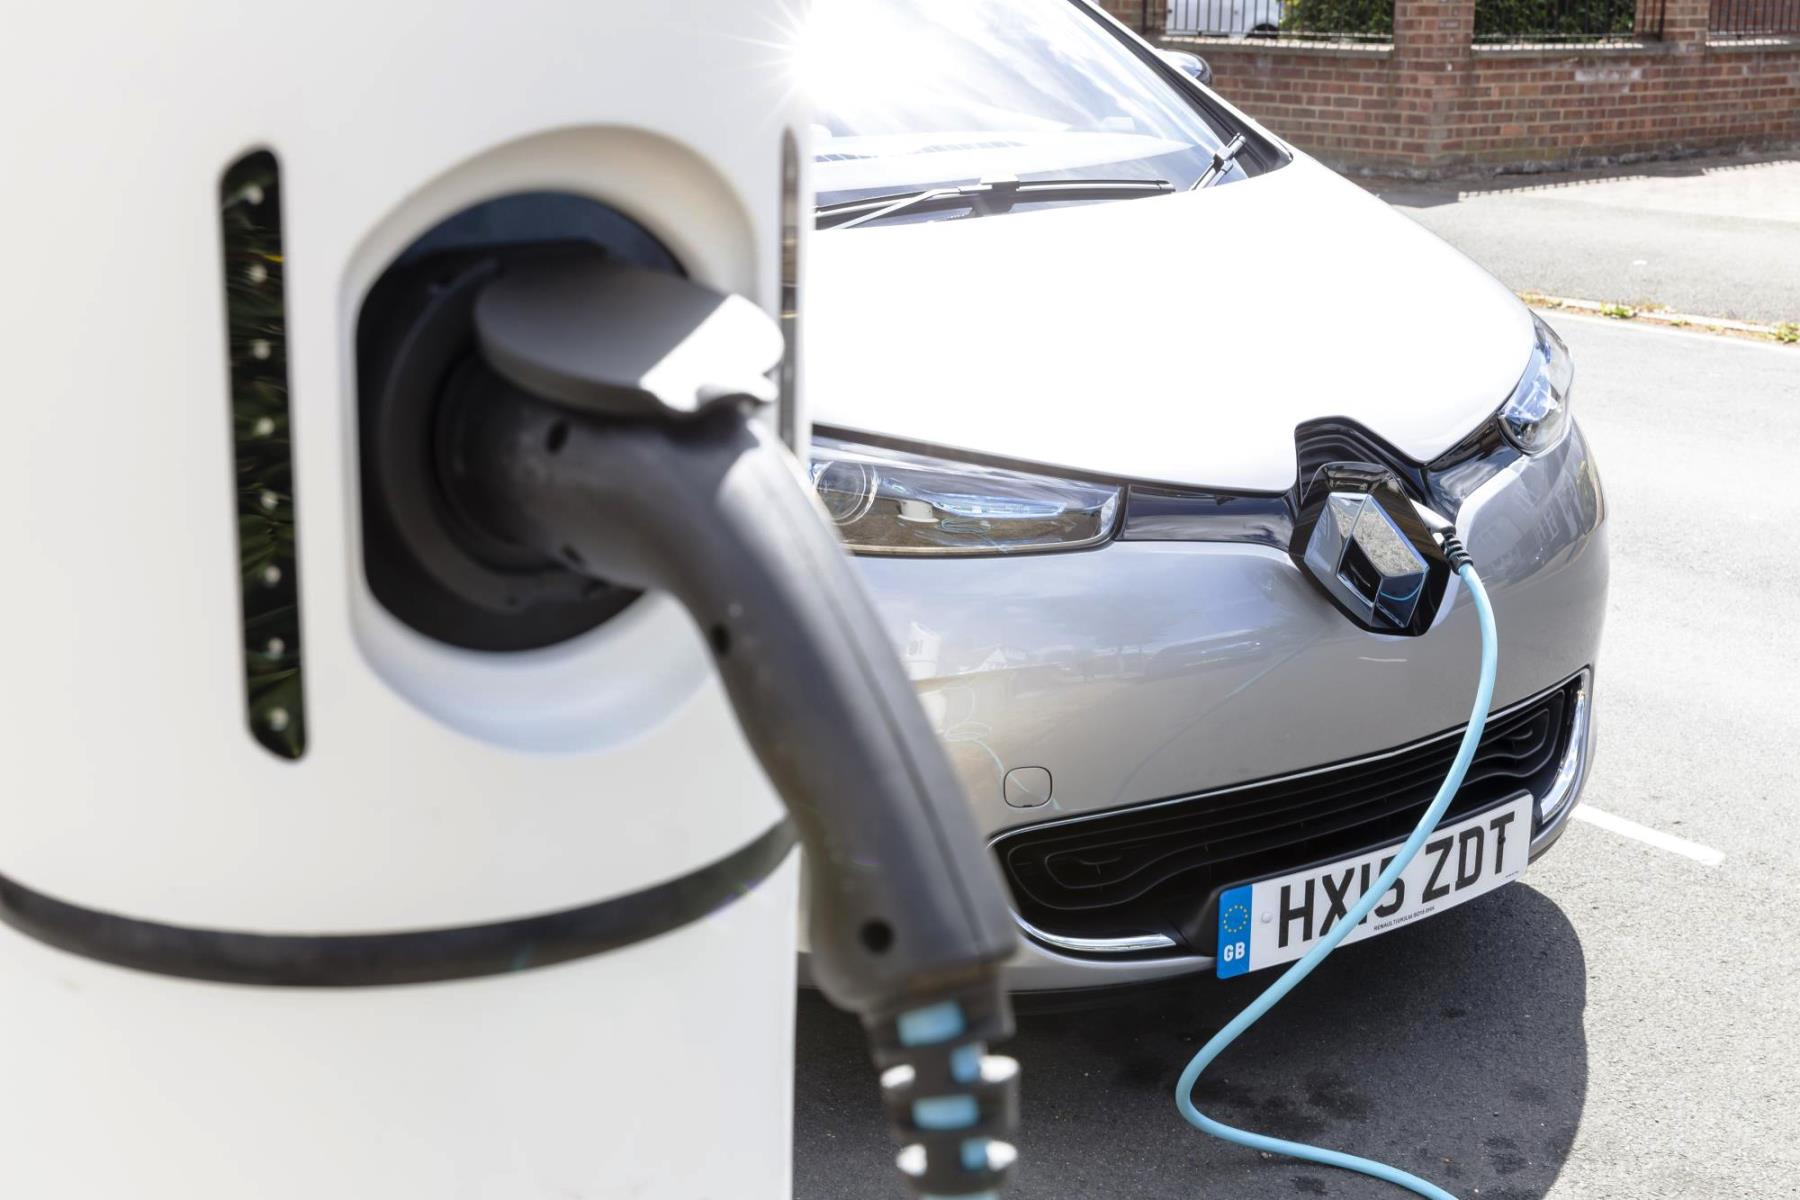 Charging a Renault Zoe